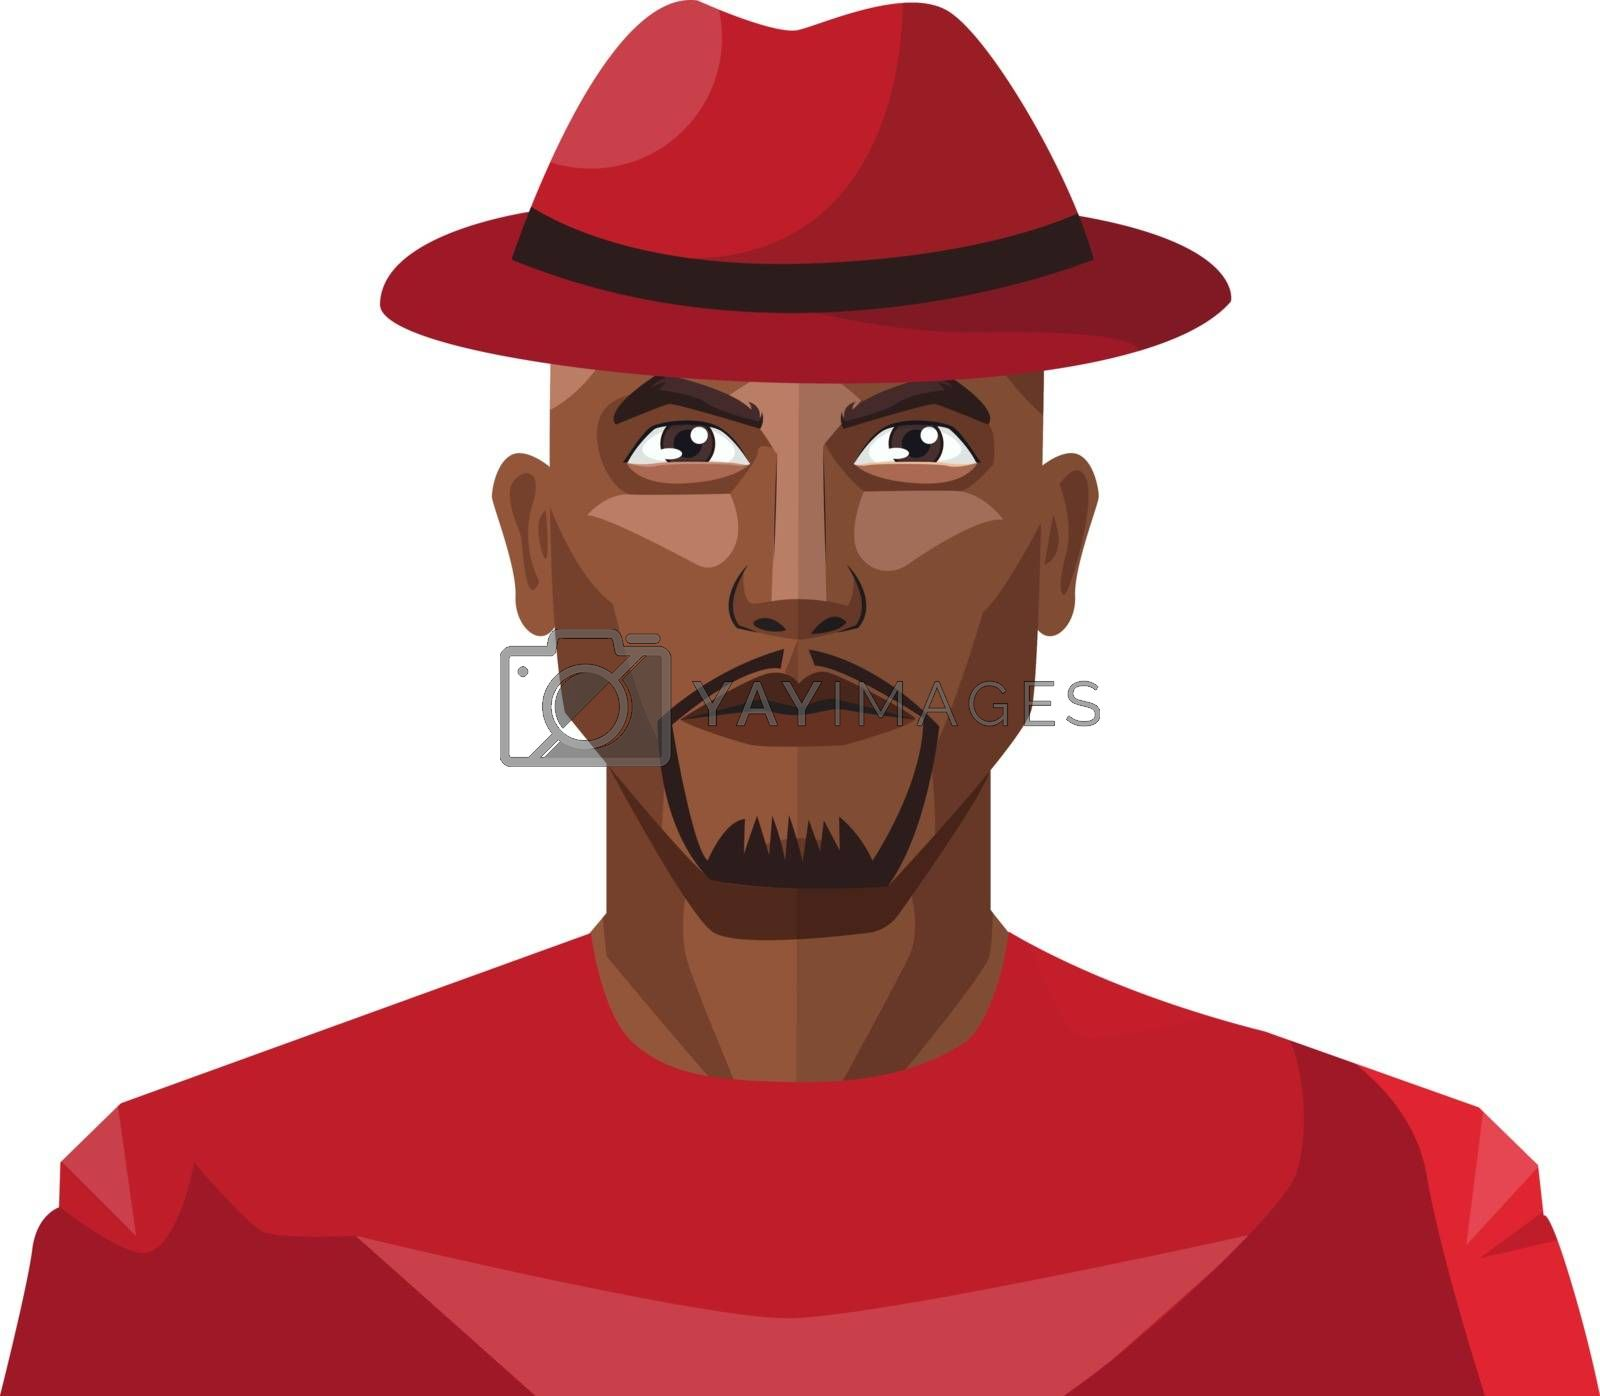 Royalty free image of African male wearing red hat illustration vector on white backgr by Morphart